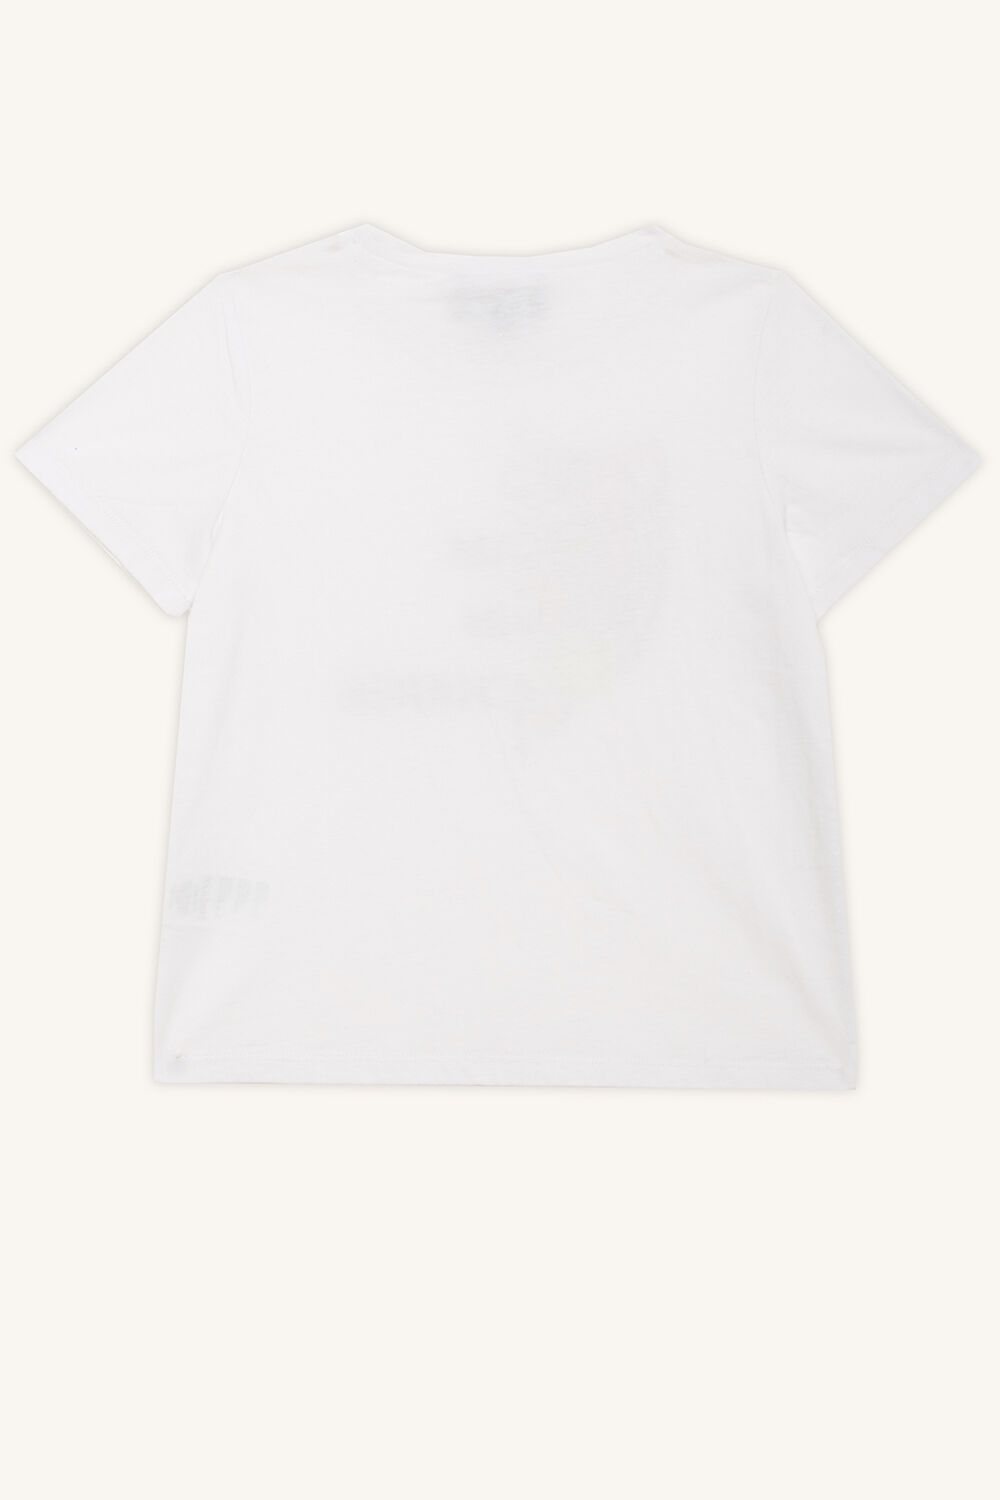 TIGA TEE in colour BRIGHT WHITE